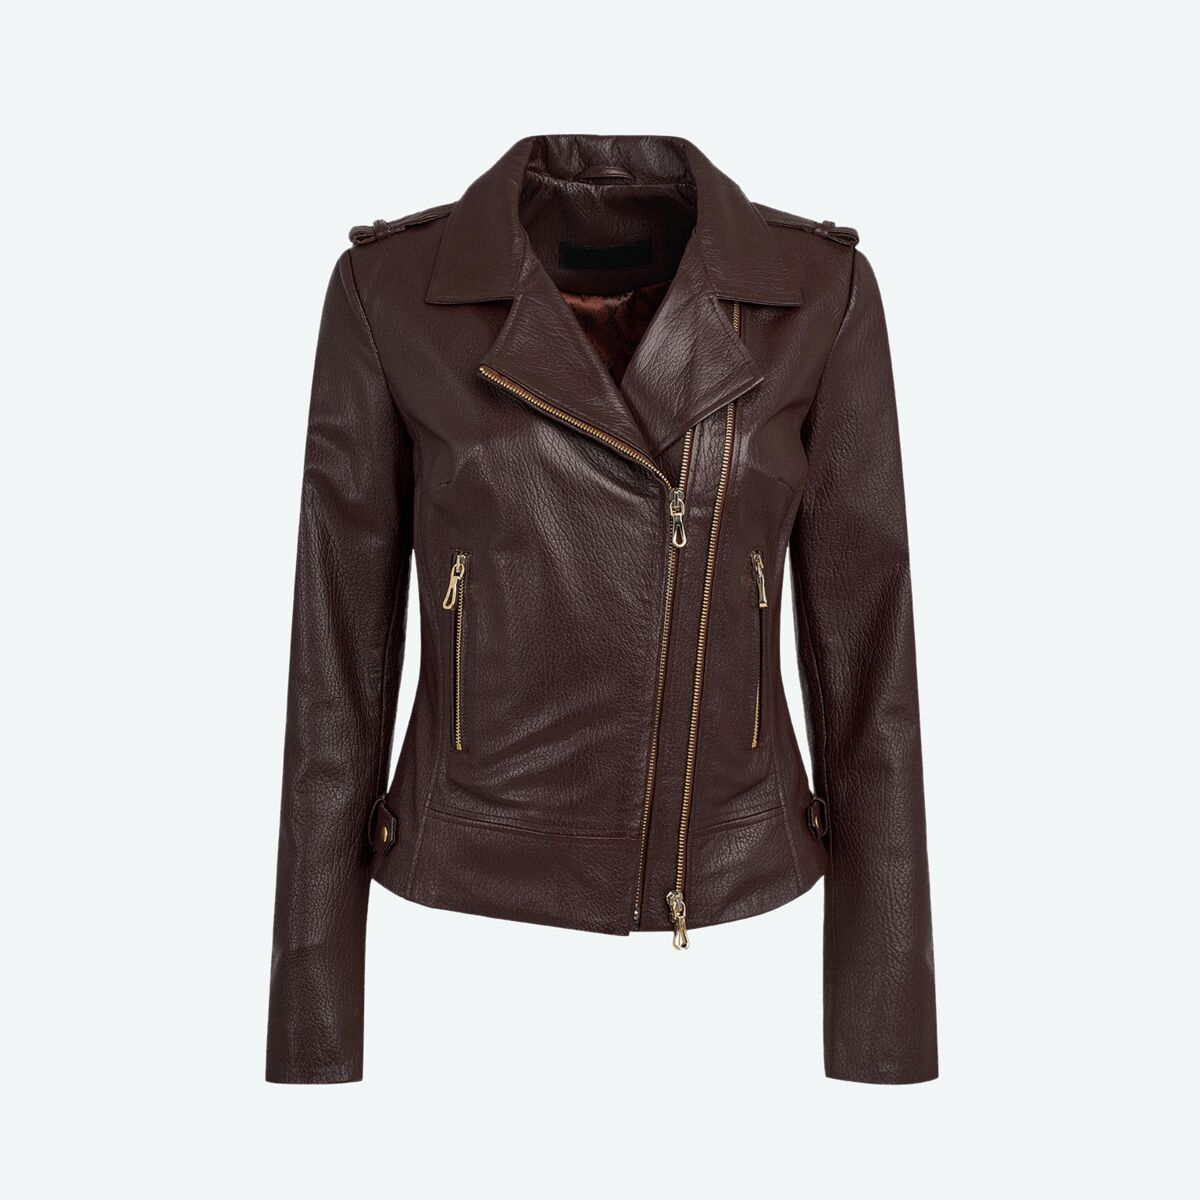 Women's Leather Biker Jacket - Maroon